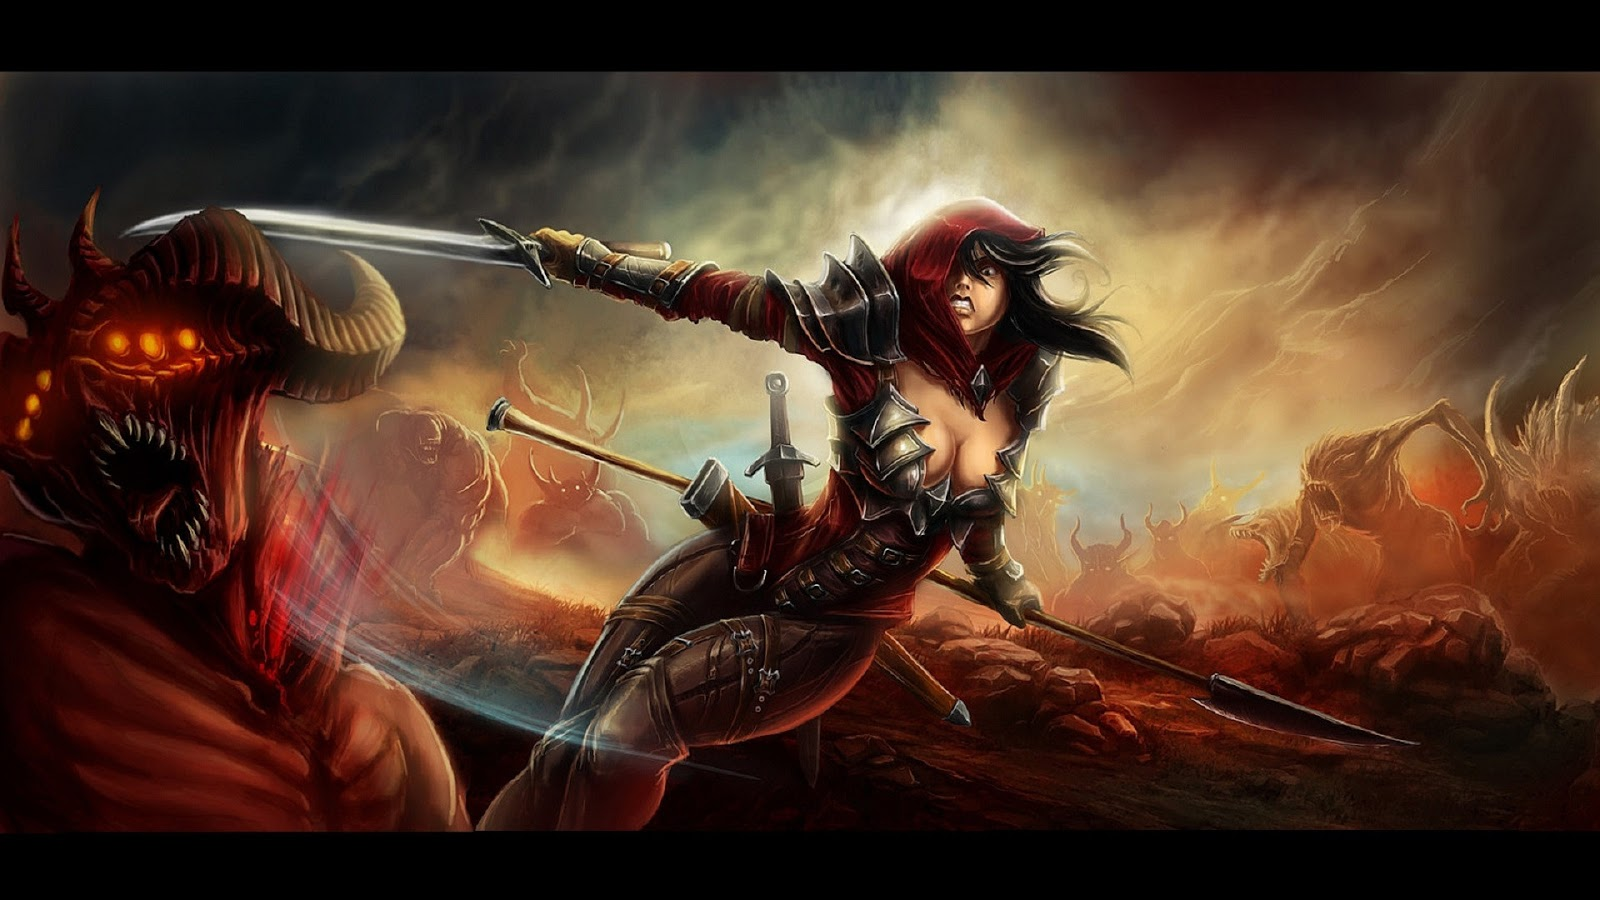 Anime Girl With Sword Wallpapers